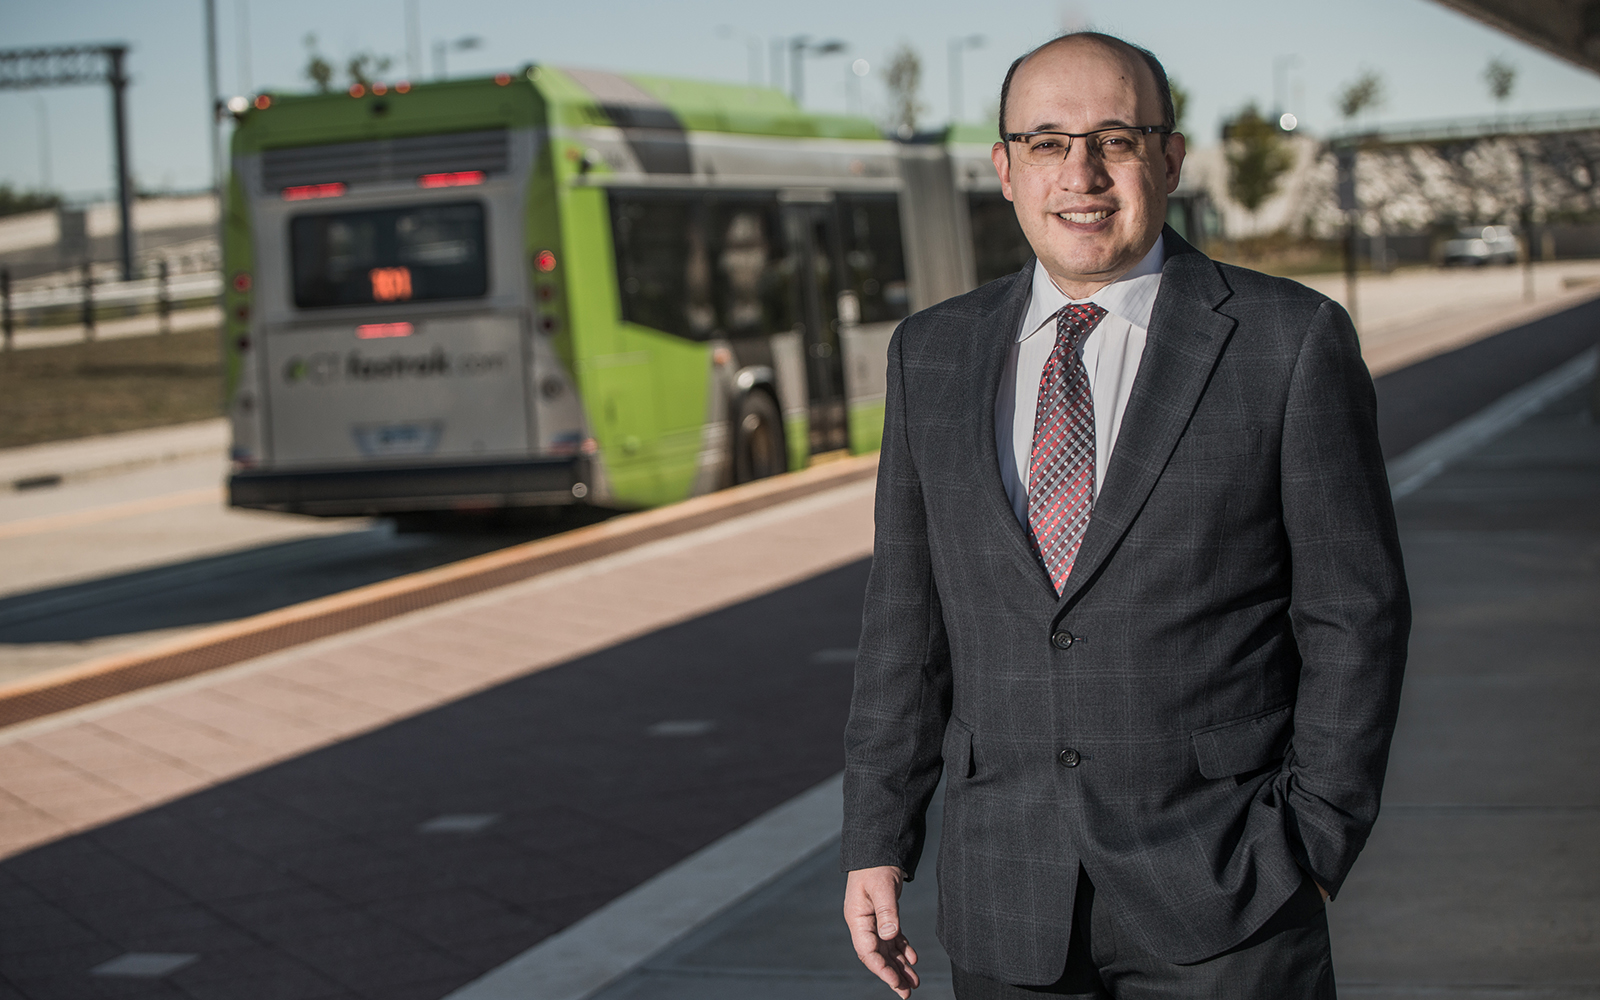 Business professor Jeff Cohen, who has researched the business and real estate impacts of the CTfastrak bus rapid transit service, says the new Hartford Line commuter train will have an impact on land value and job opportunities in cities. (Nathan Oldham/UConn School of Business)